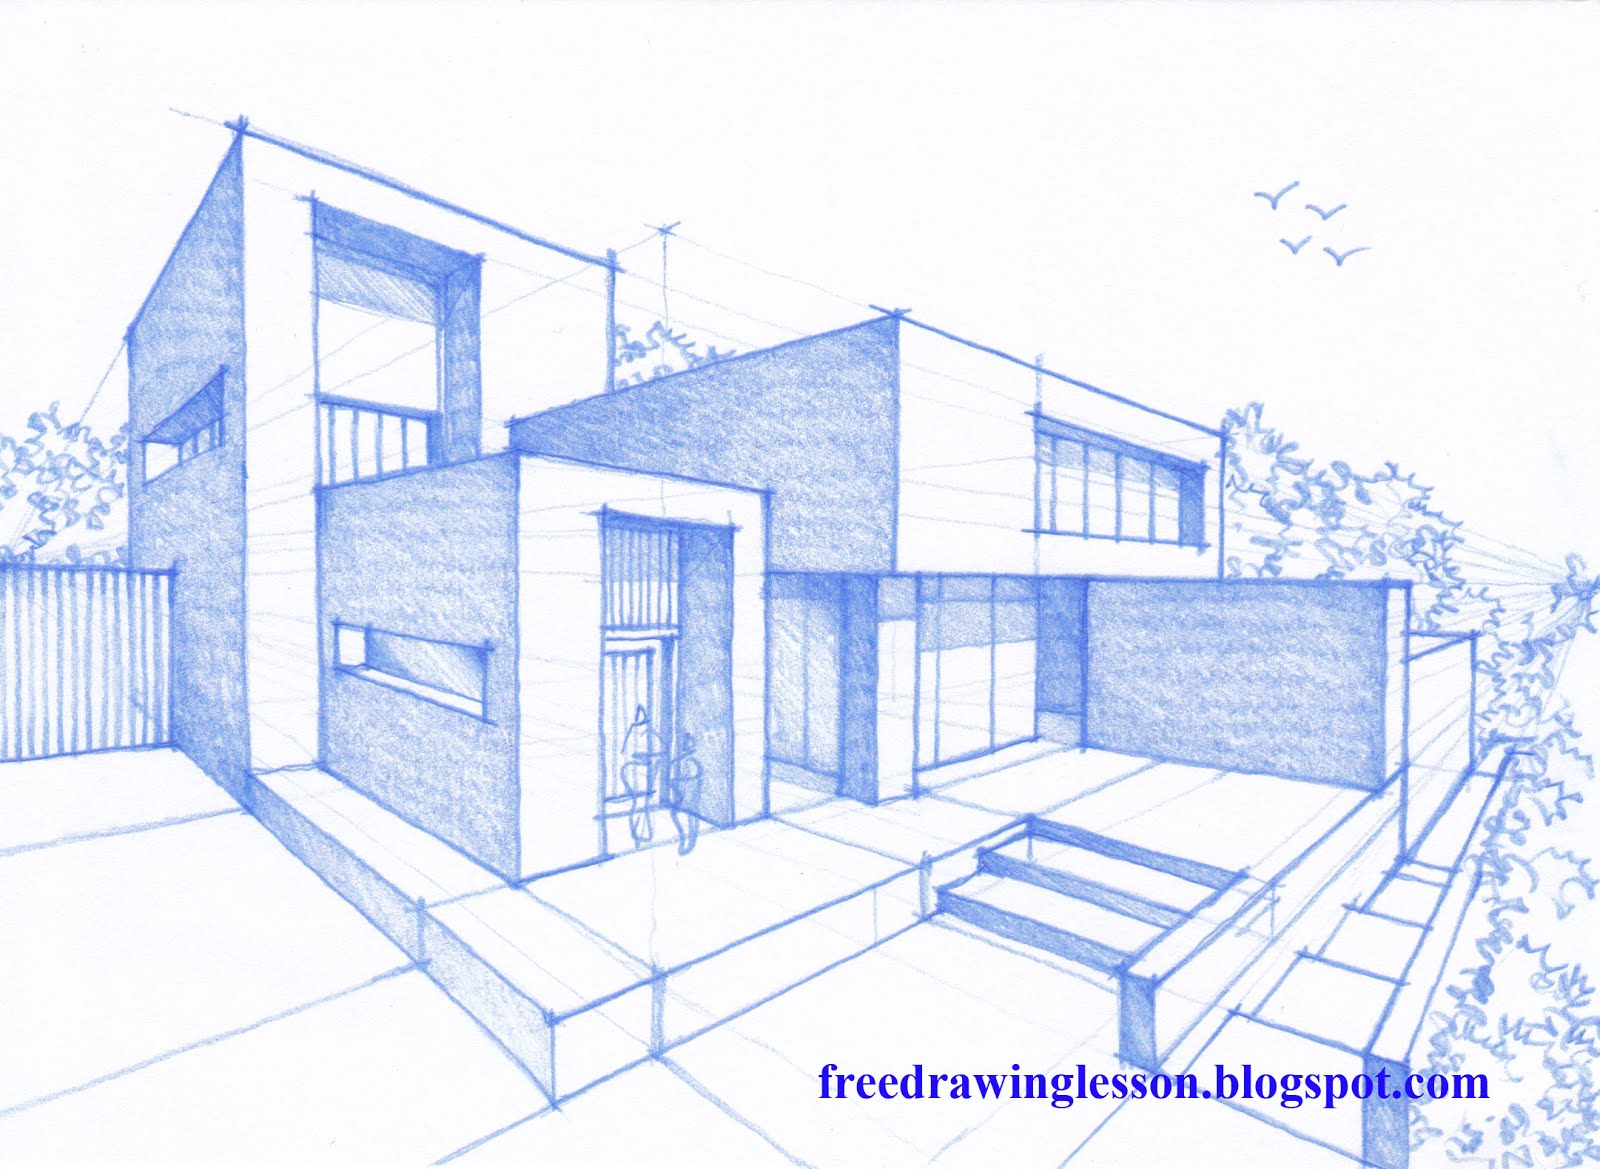 How to draw a house learn to draw for Architecture modern house design 2 point perspective view